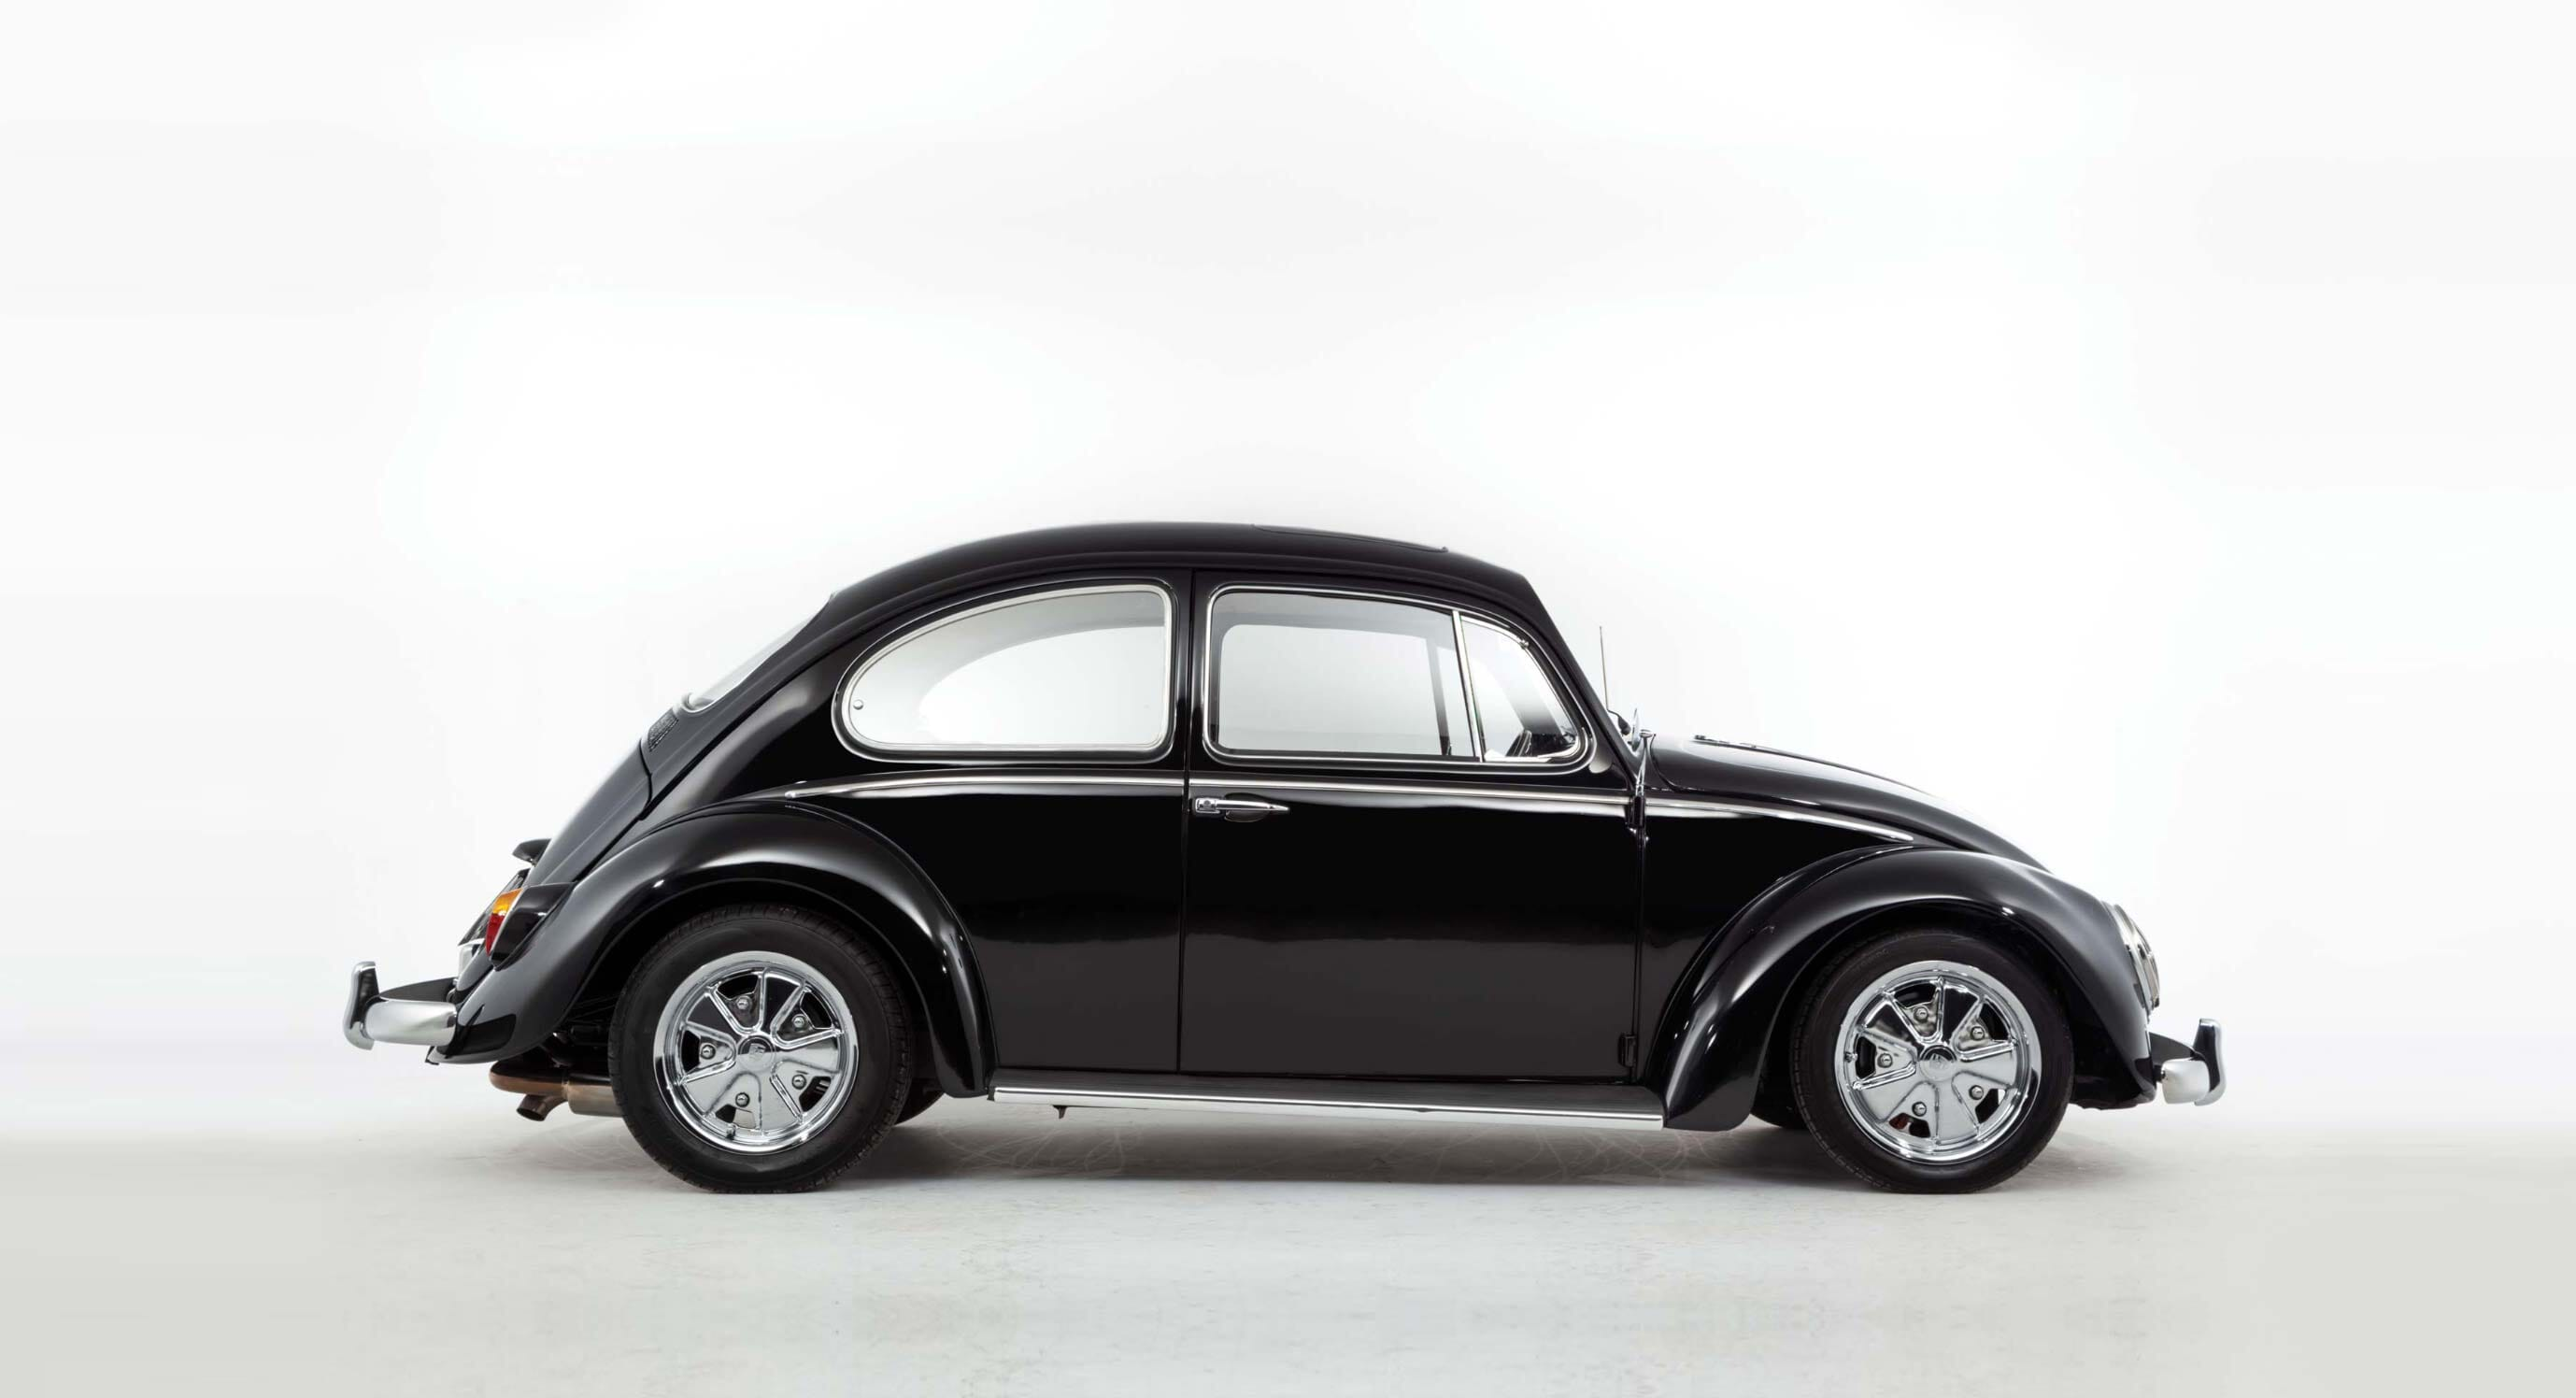 Classic Car Find of the Week: 1966 VW Beetle